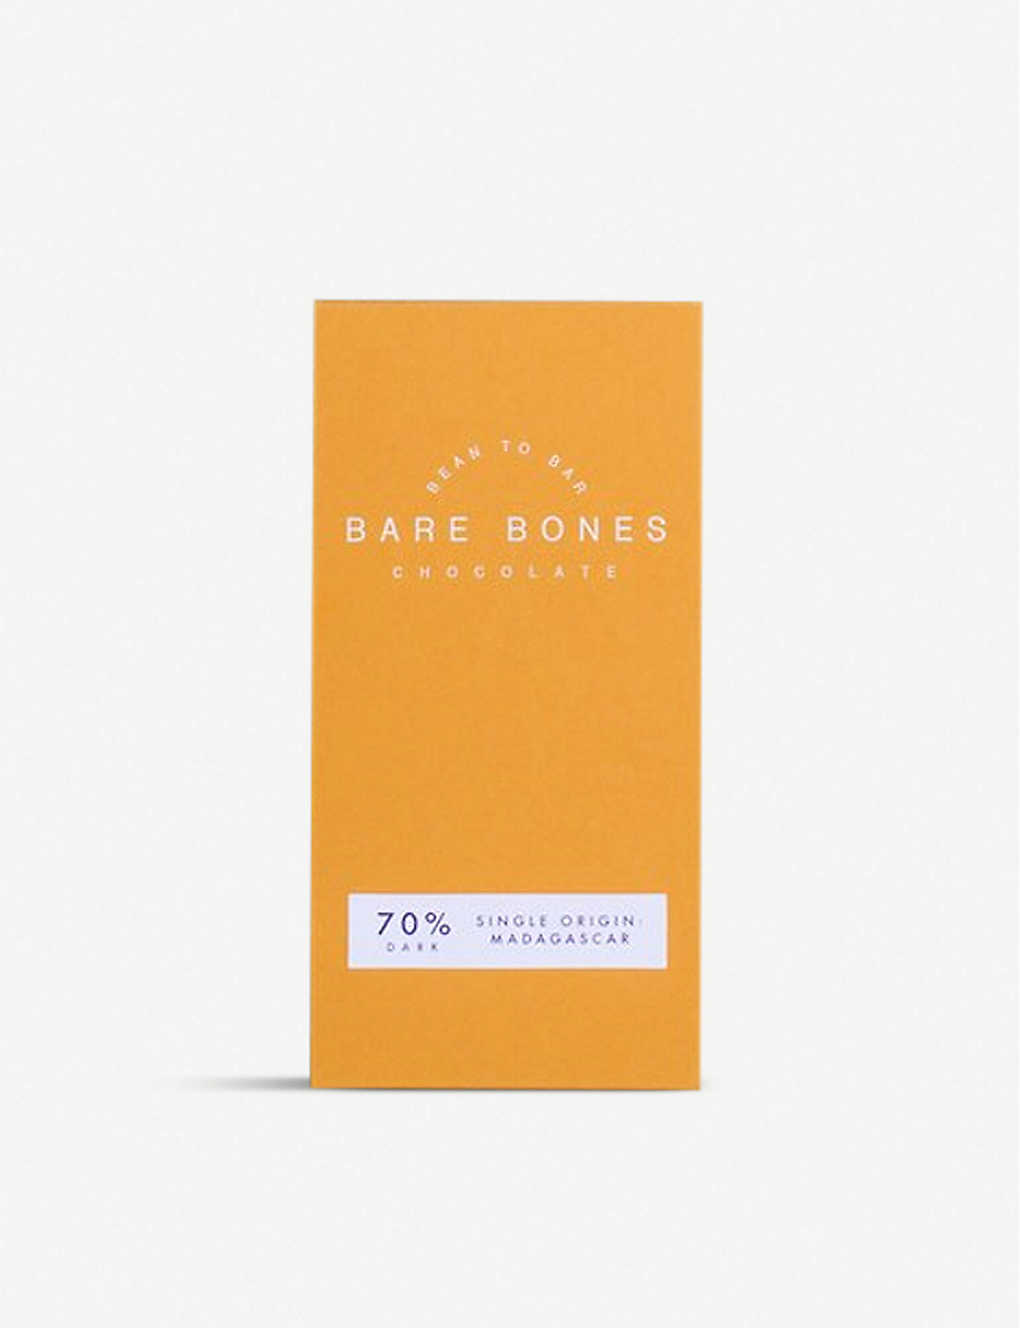 CHOCOLATE: Bare Bones Madagascar 70% dark chocolate bar 70g